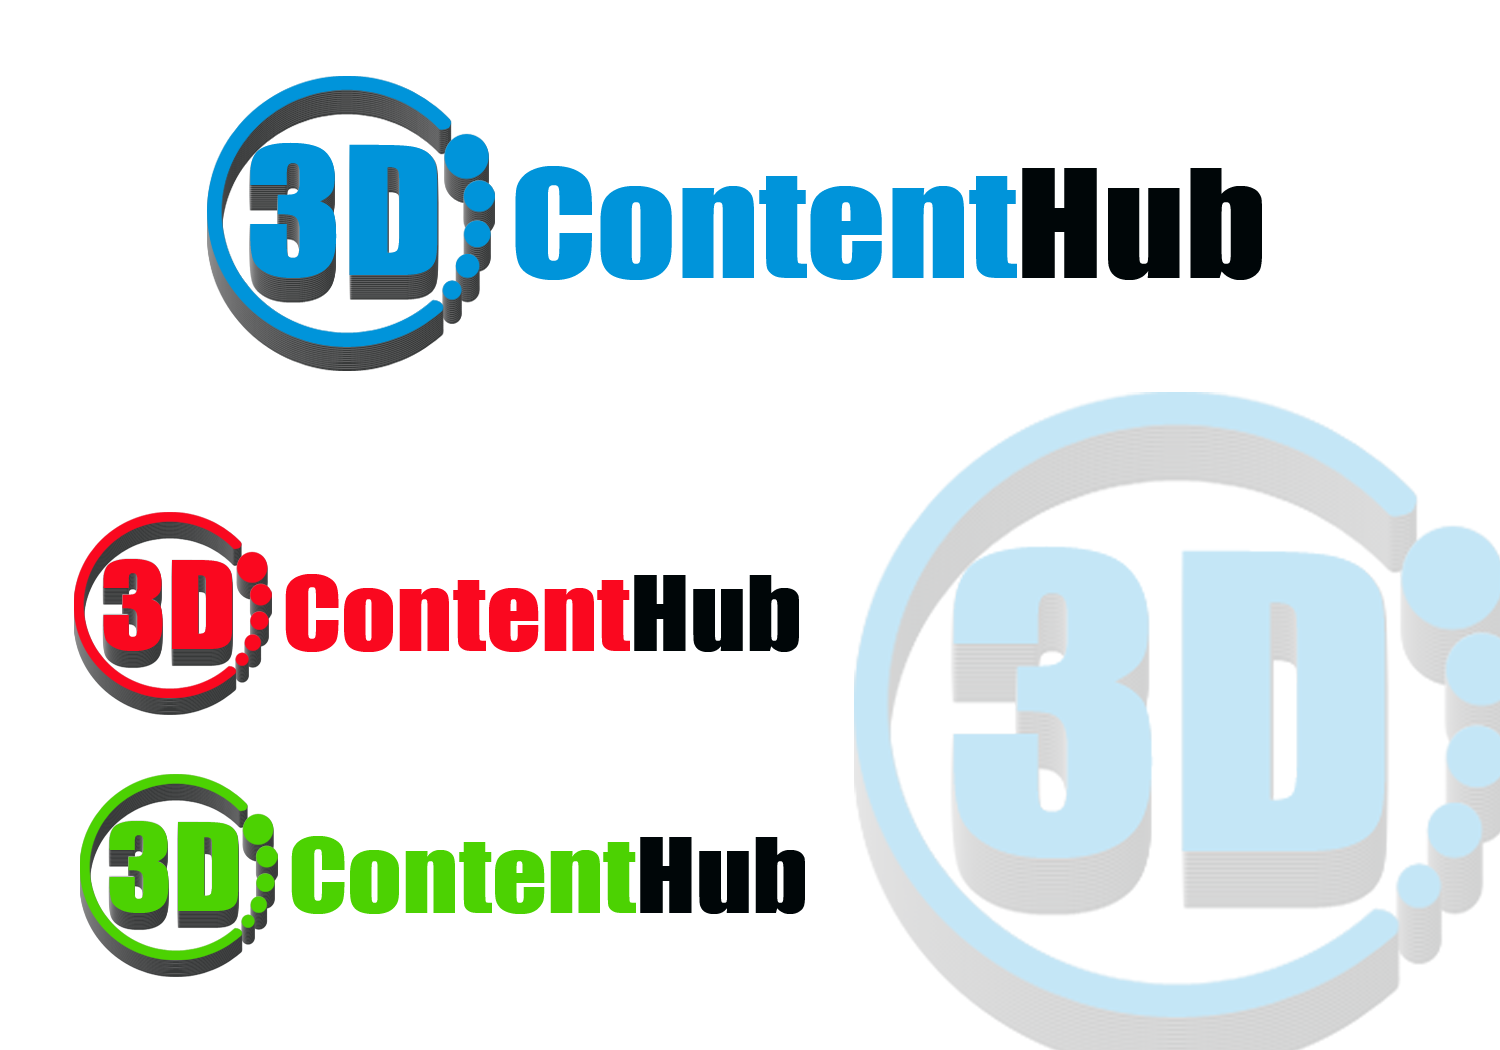 Logo Design by golden-hand - Entry No. 38 in the Logo Design Contest Unique Logo Design Wanted for 3DContentHub (.com).